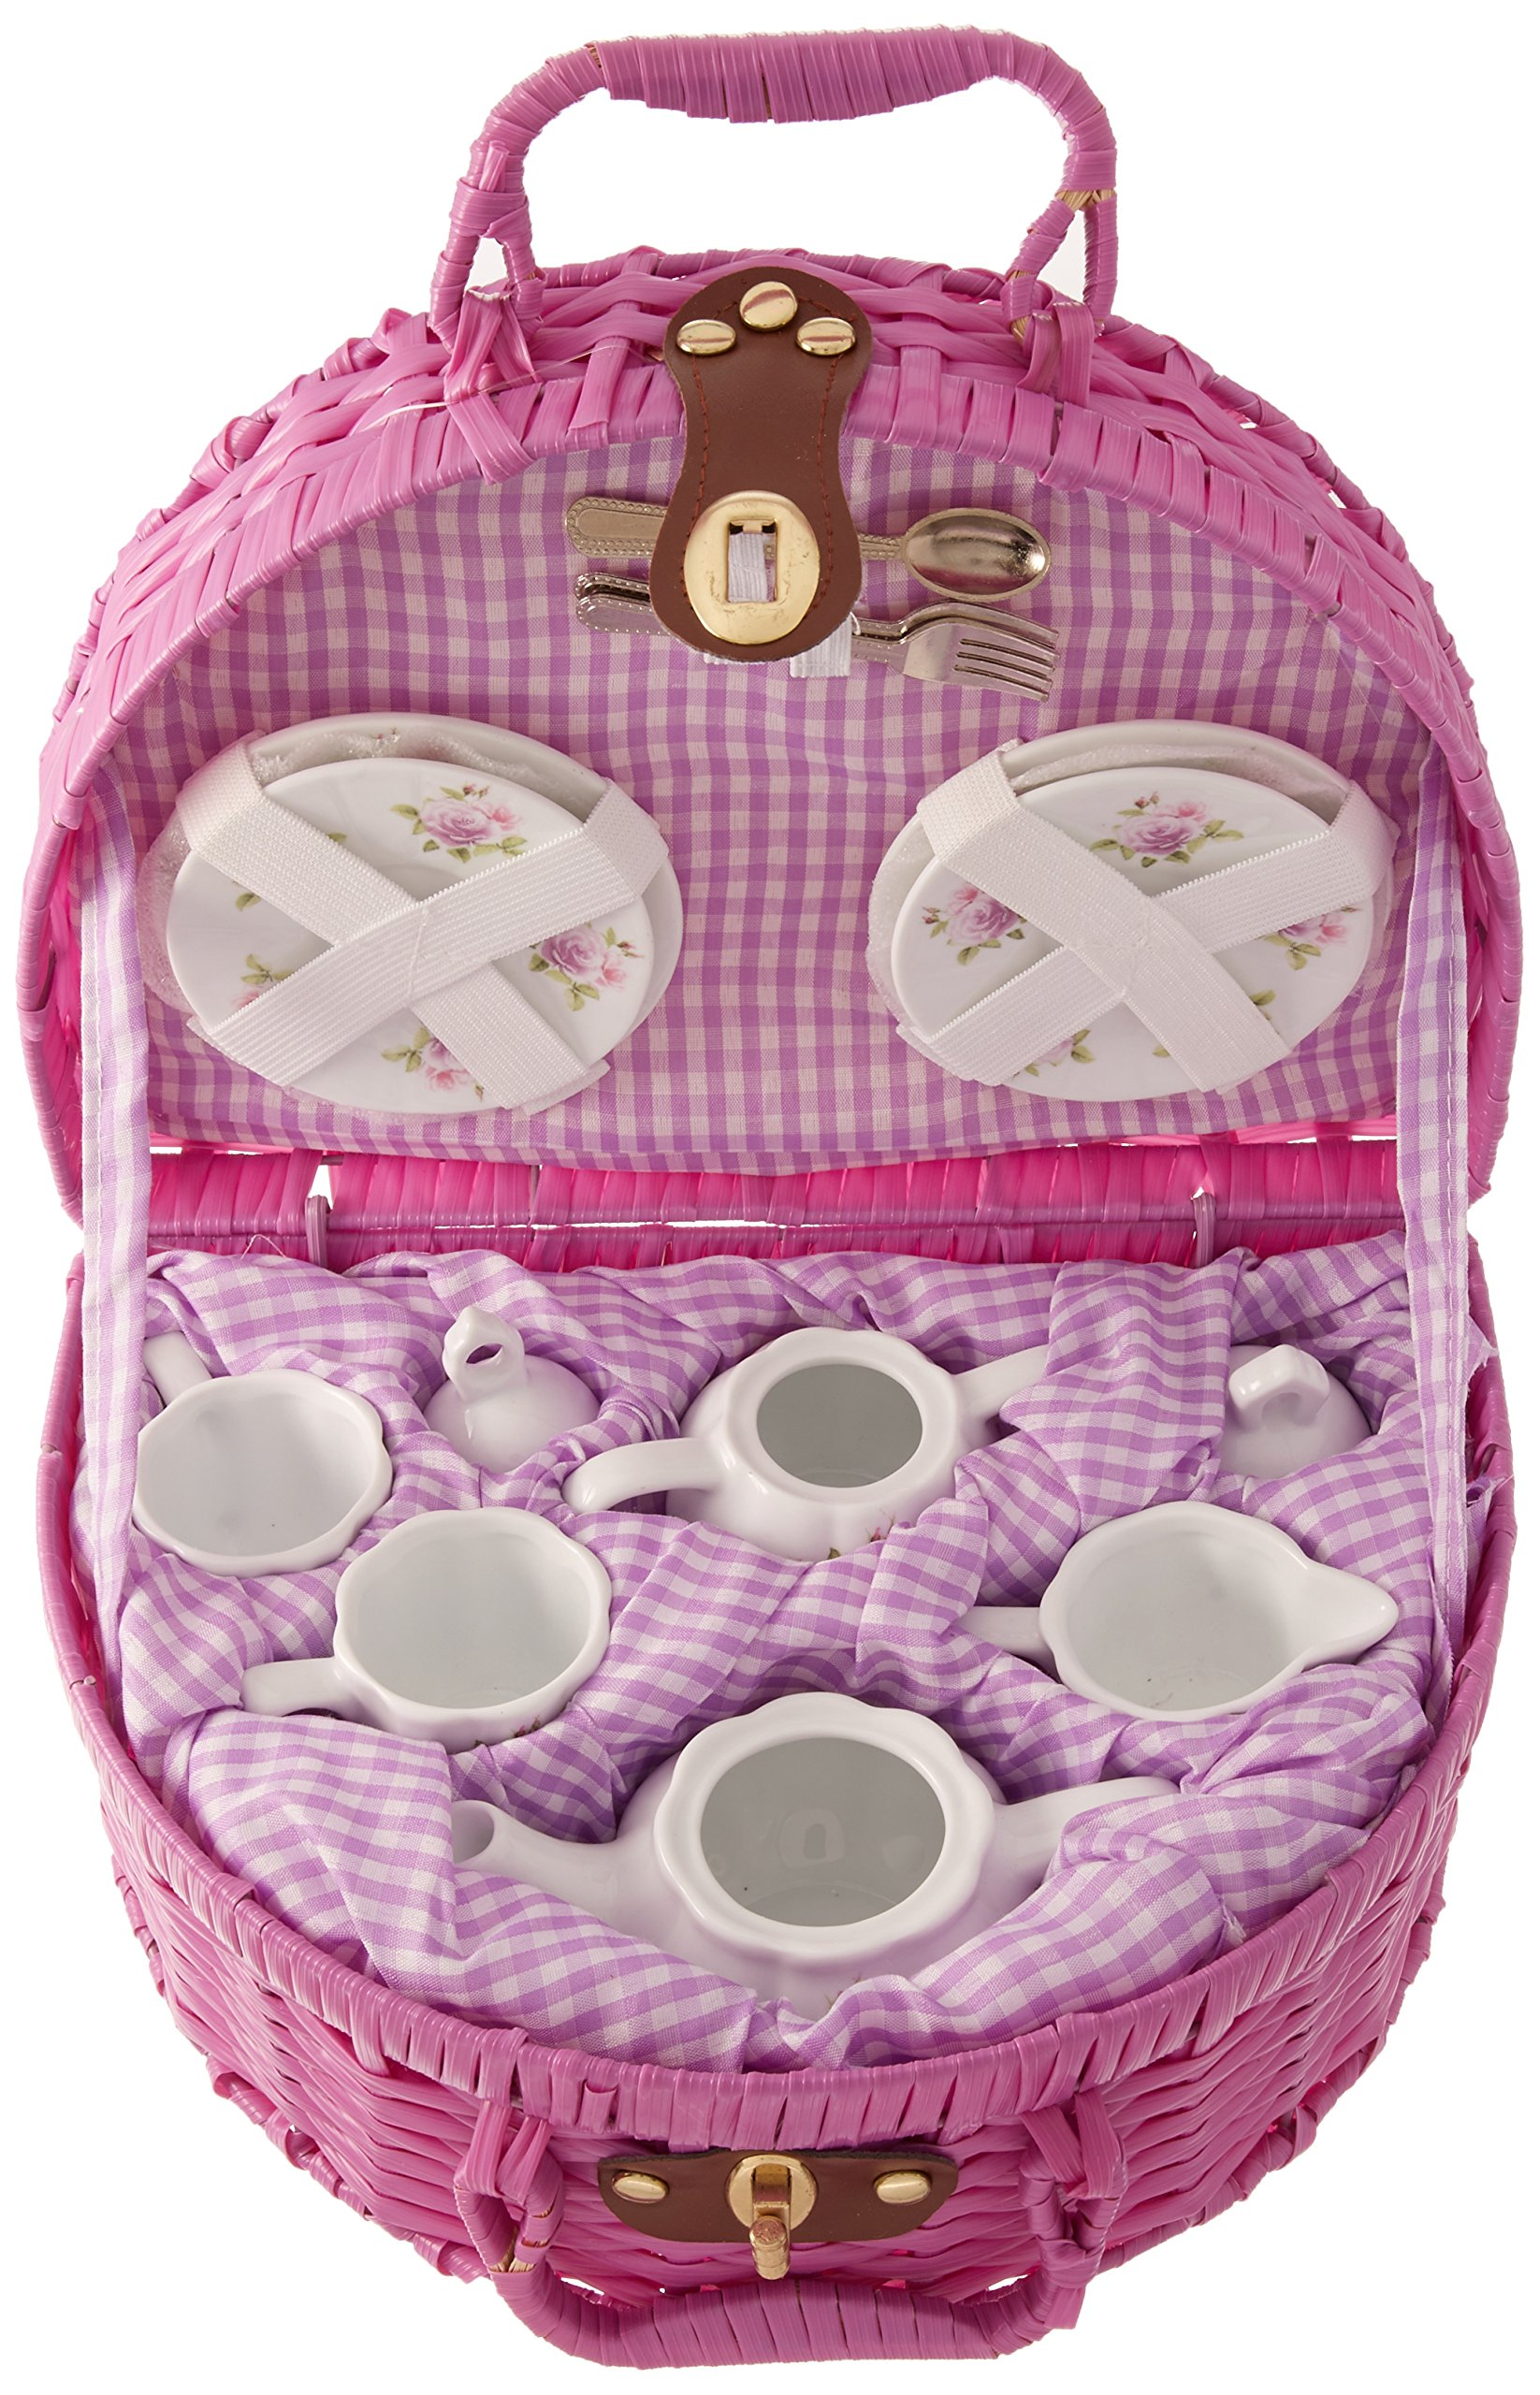 Delton Products Rose Pattern 1X Child Size Pretty Little Tea Set for Two in Basket, Rose